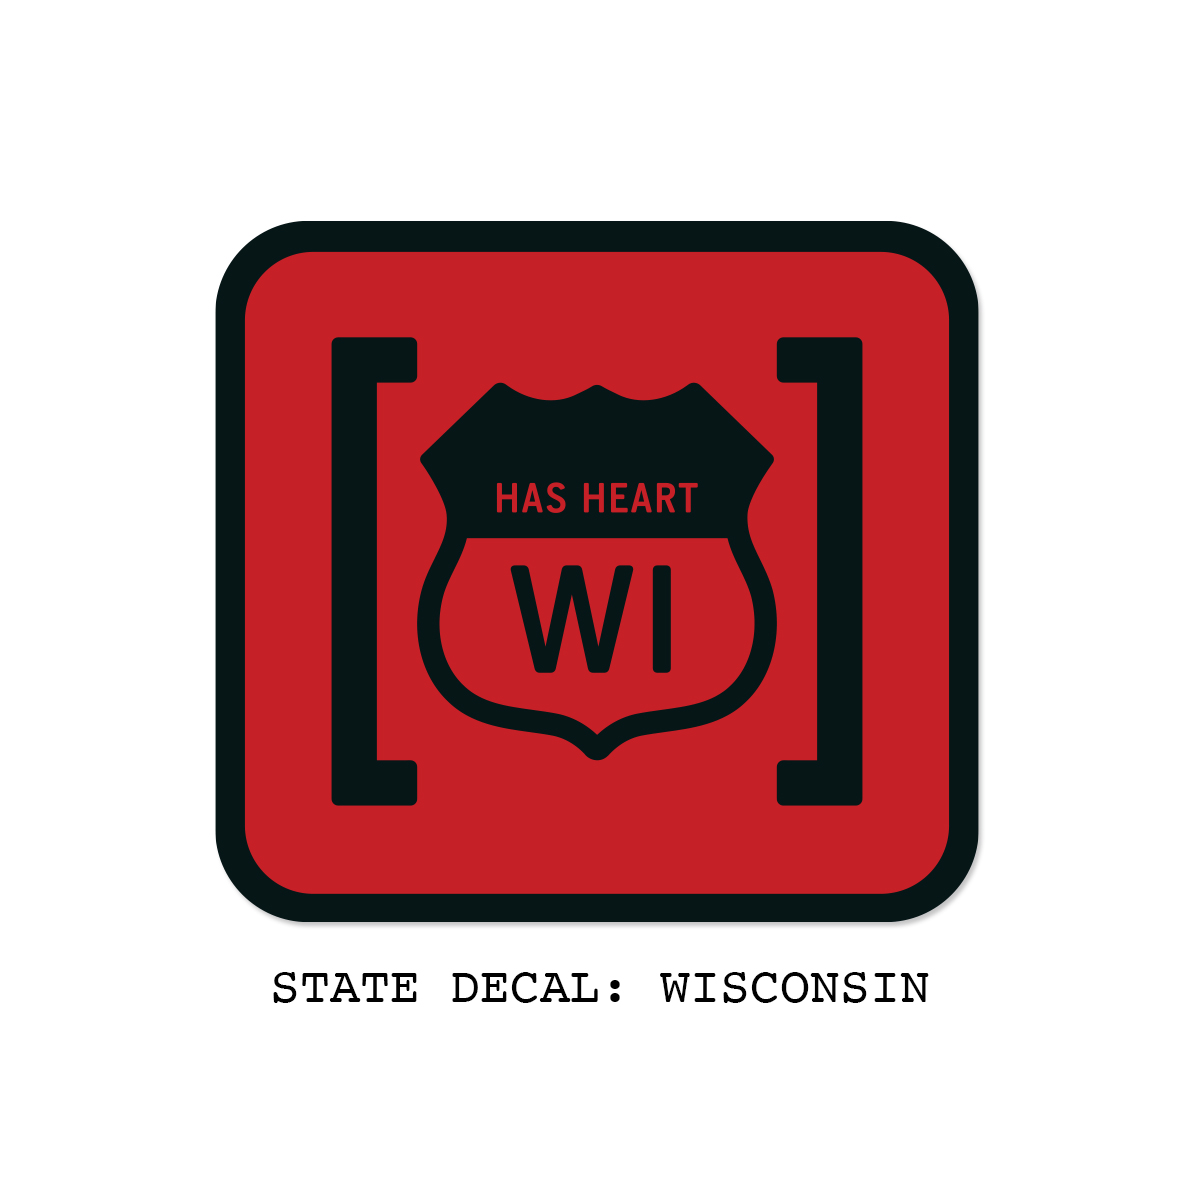 hasheart-statedecal-WI